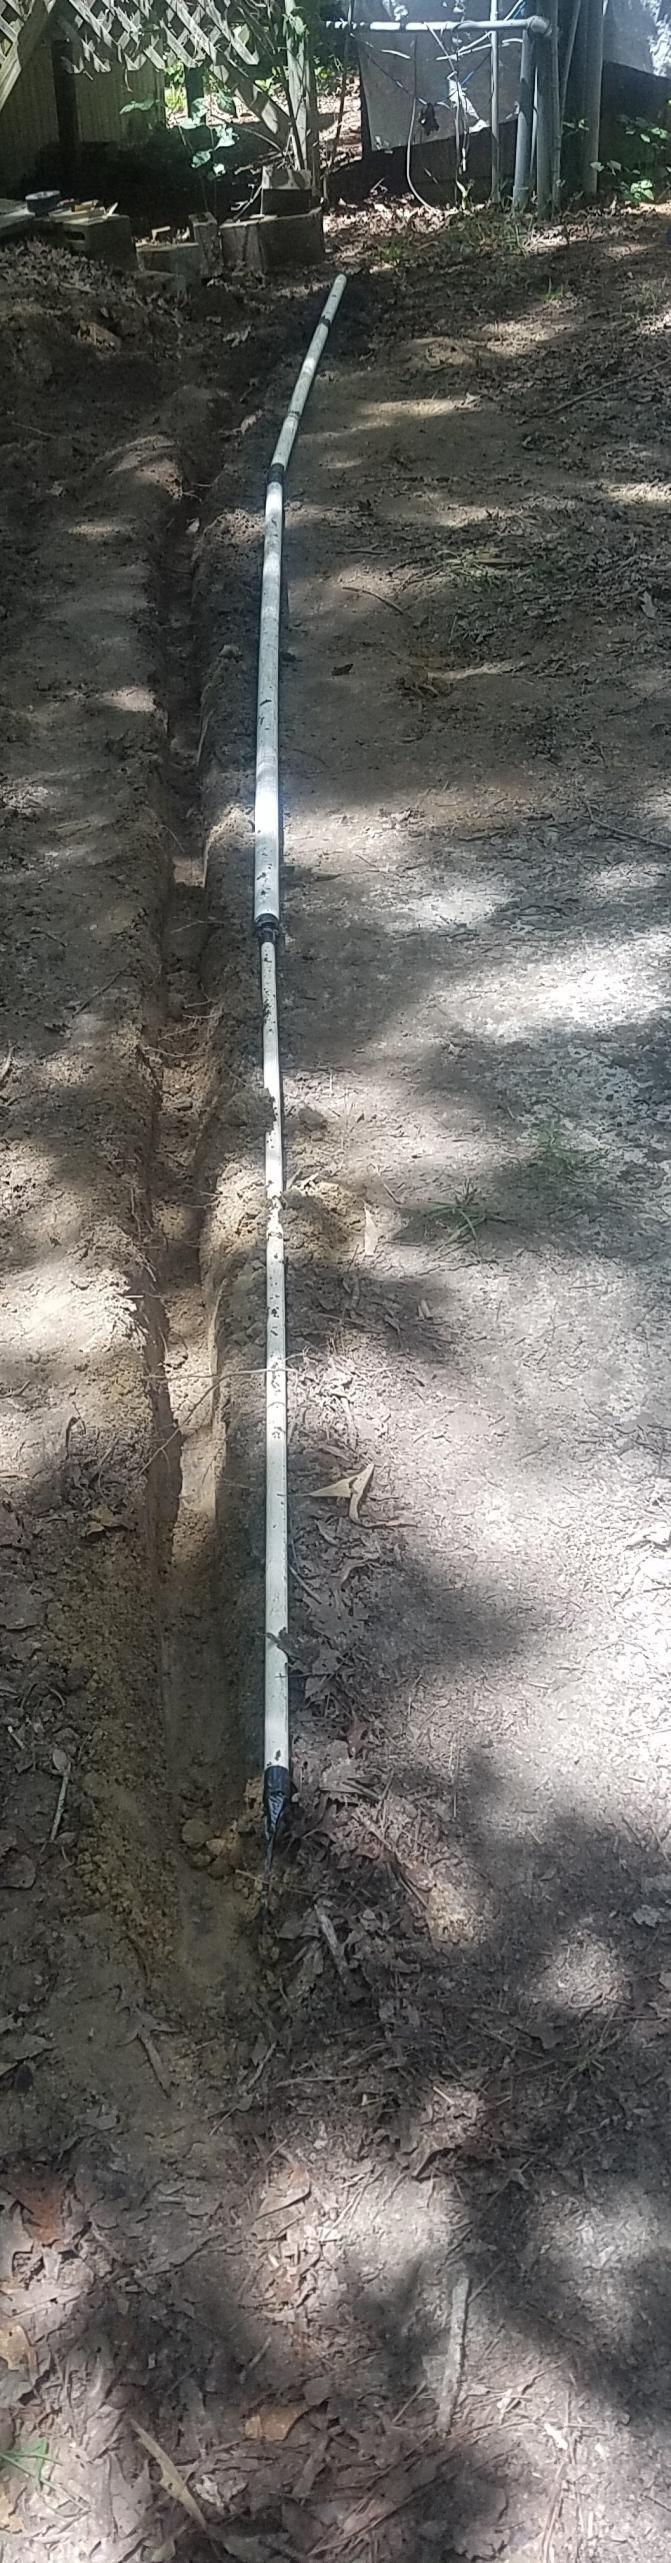 671x2563 Ditch dug, Cable, in Telephone conduit ditch, by John S. Quarterman, for OkraParadiseFarms.com, 24 May 2018